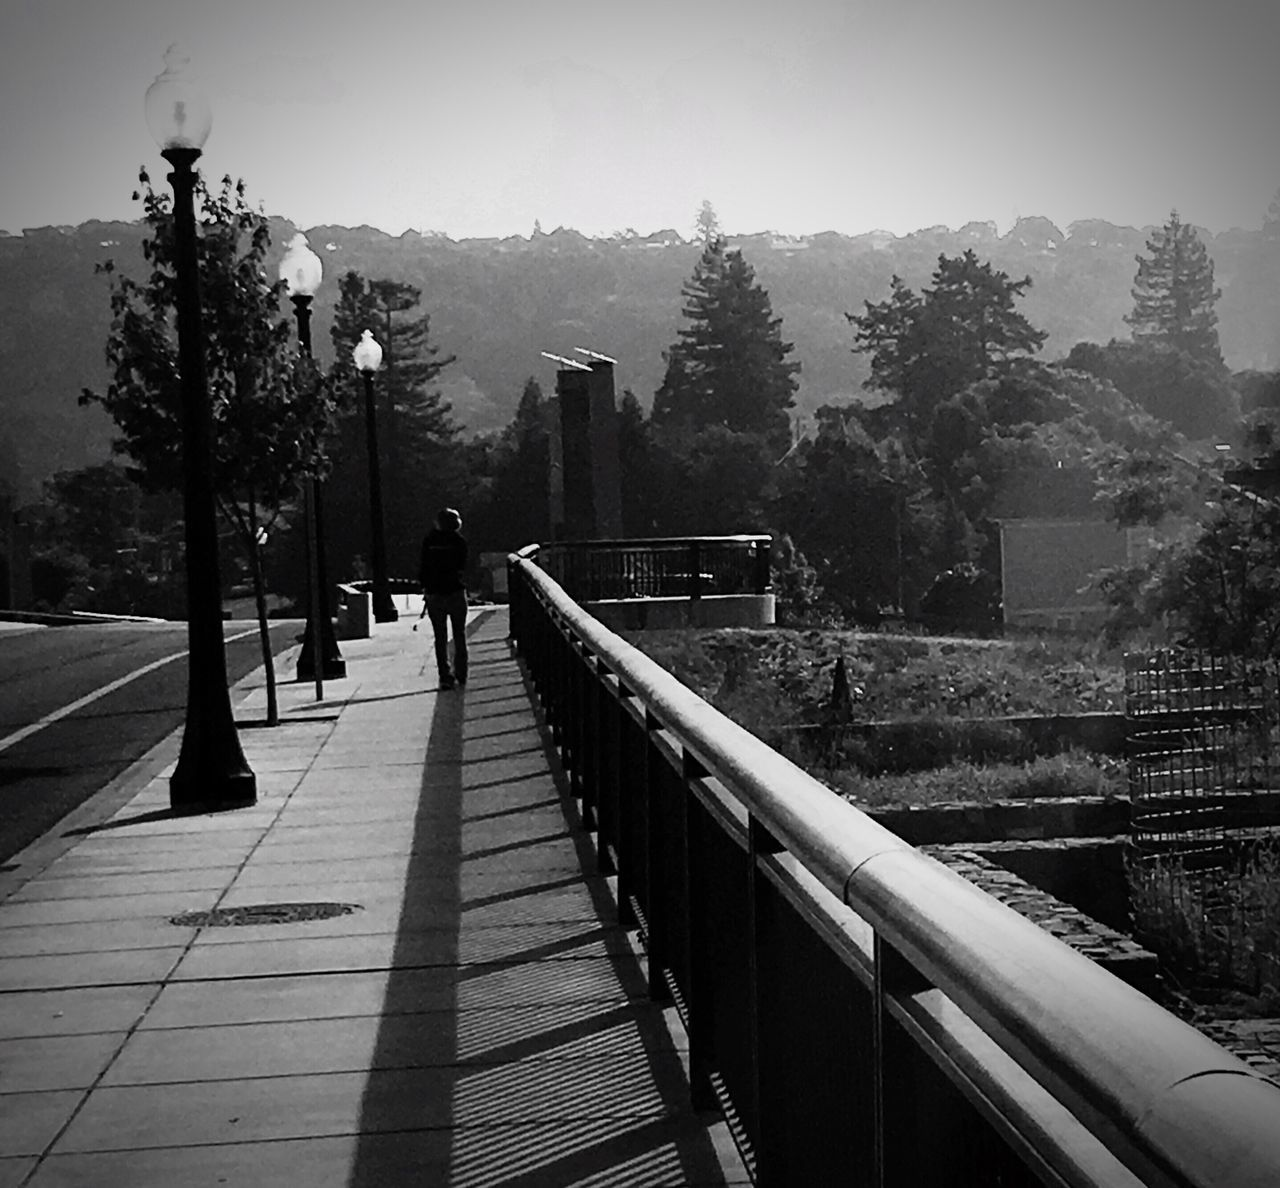 Loner Loner Life Human Condition Long Journey Crossing The Bridge Napa River Alone